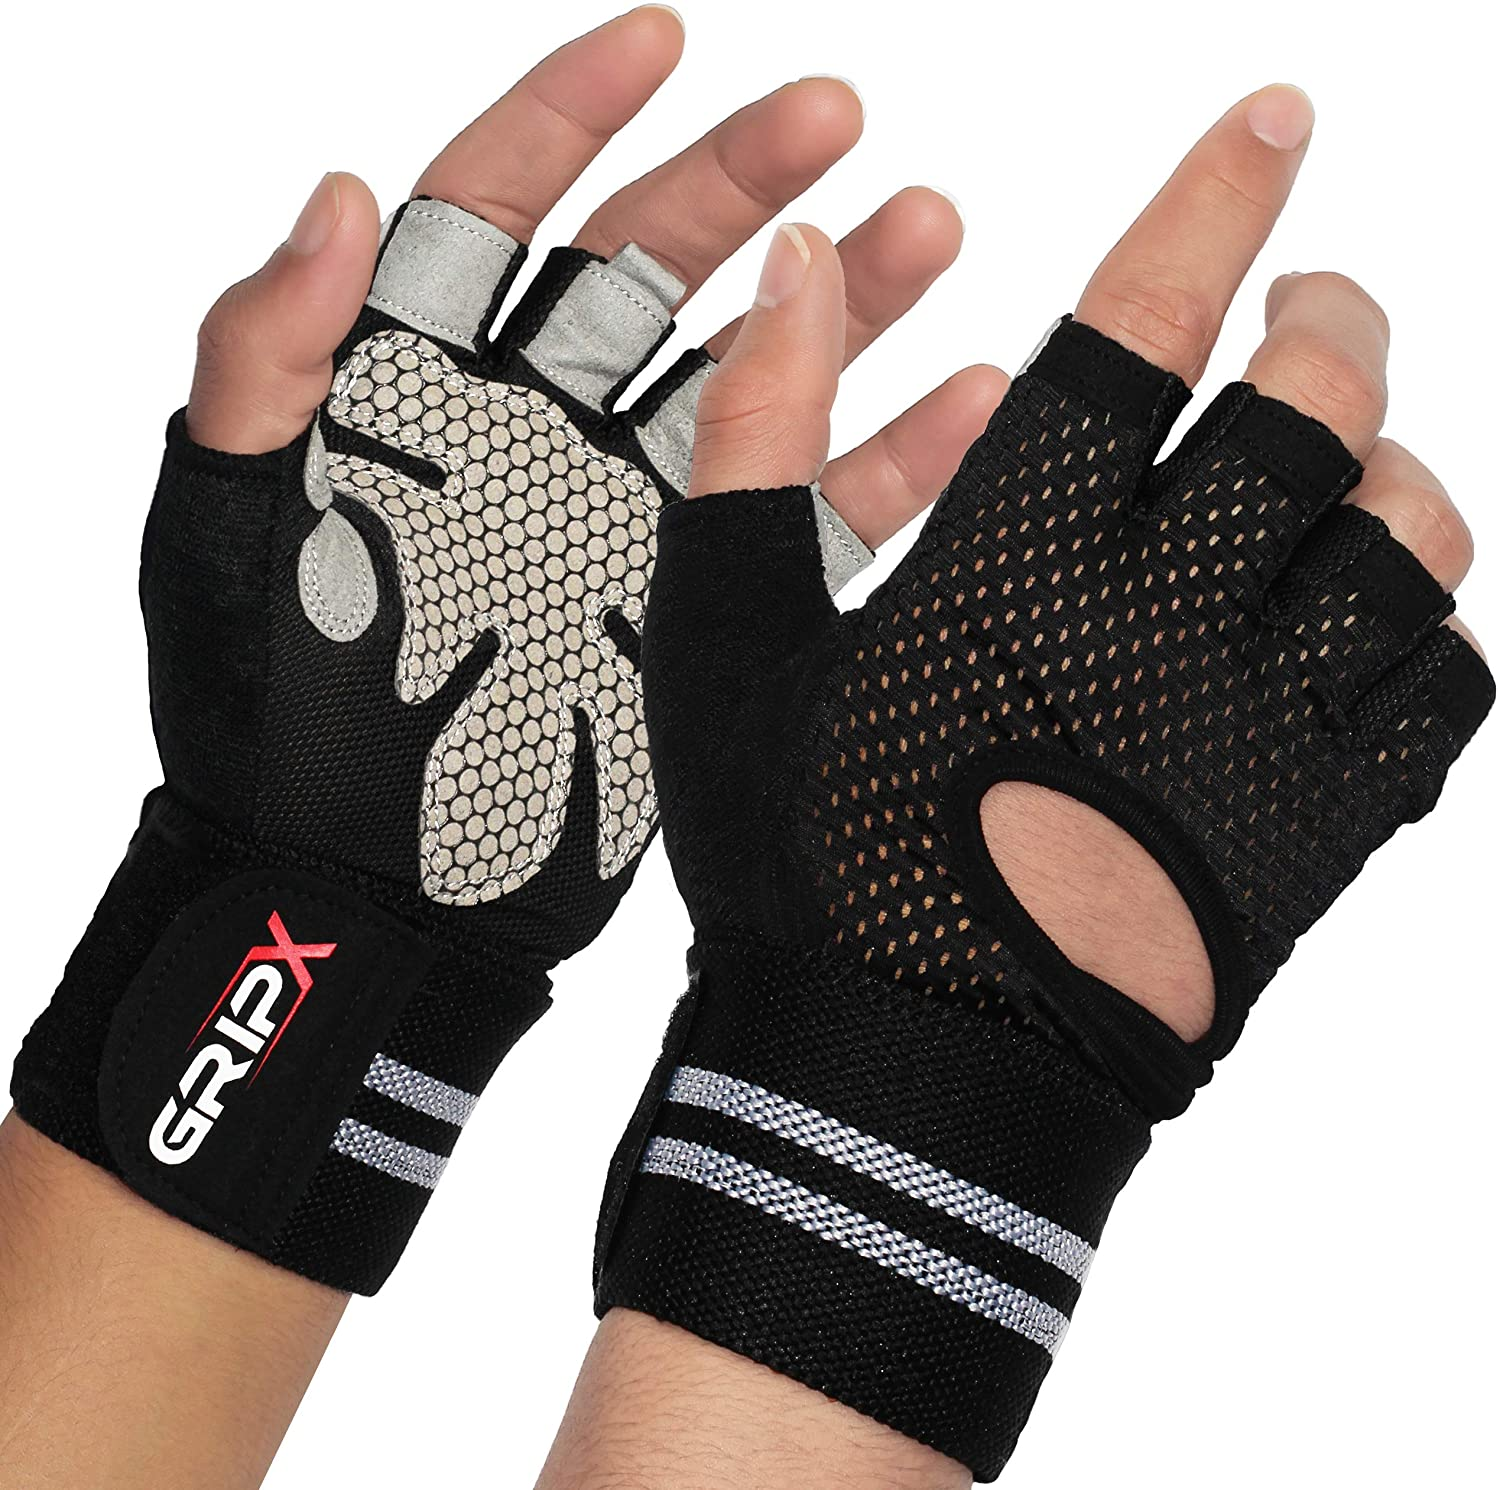 Breathable Weight Lifting Gloves with Wrist Wrap Support. Full Hand Protection & Extra Non-Slip Grip. Light & Durable for Intense Weightlifting & Fitness Workout. for Men & Women. by - GripX